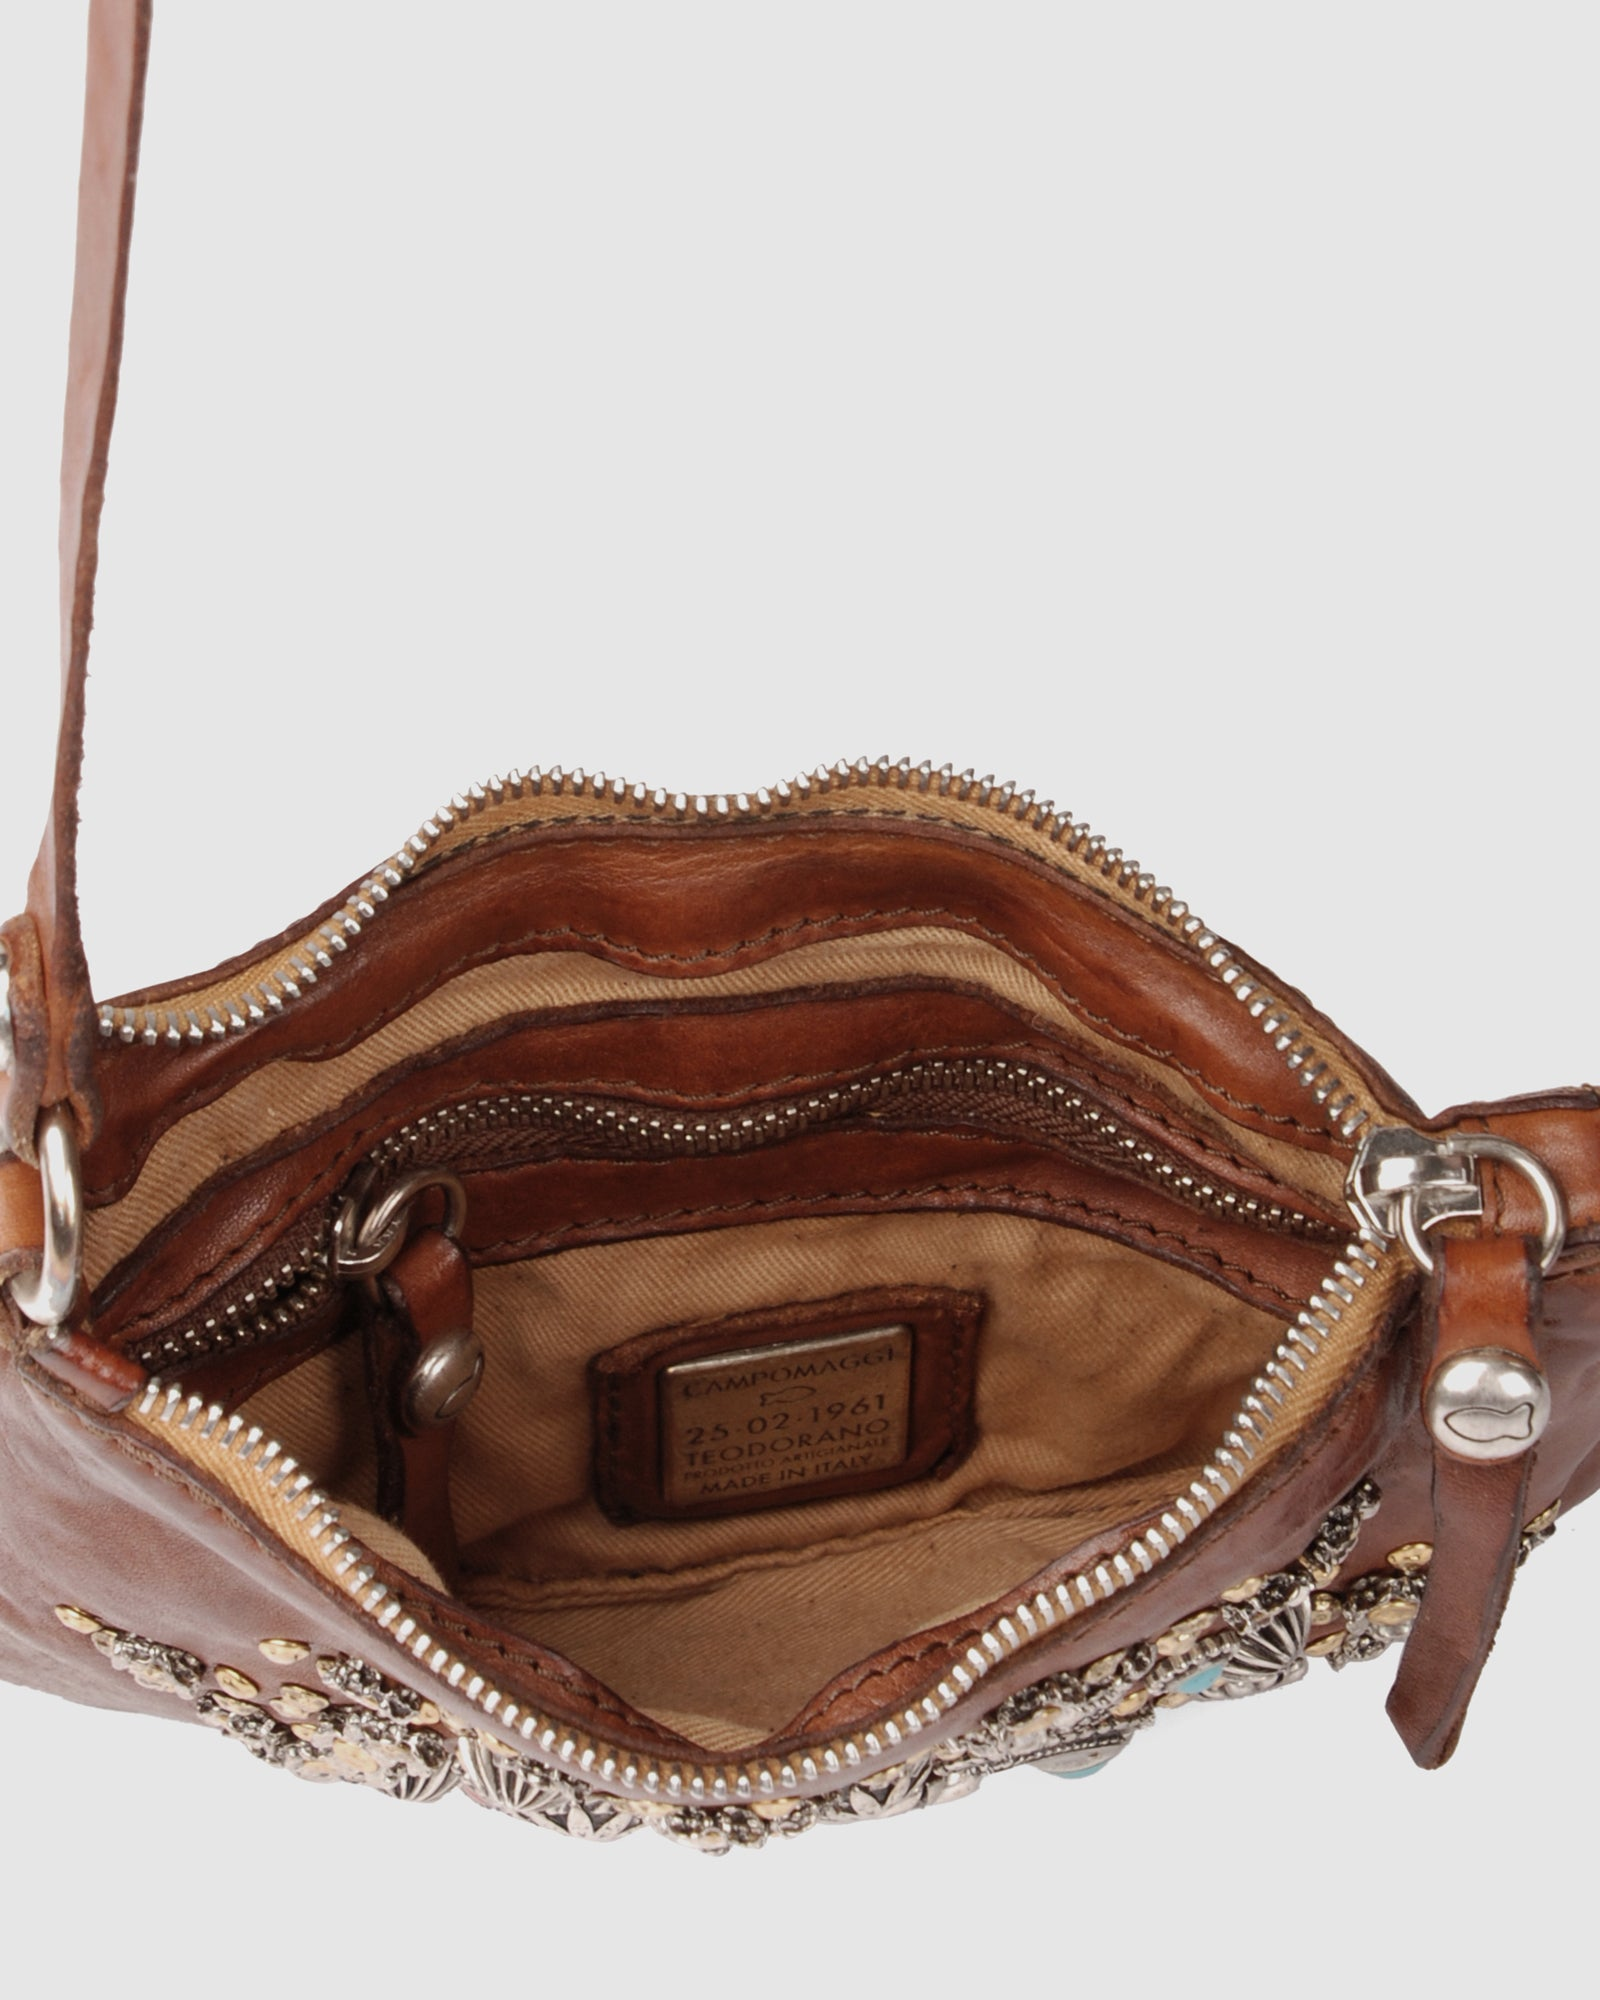 CAMPOMAGGI ROSETTE CROSS BODY BAG COGNAC LEATHER